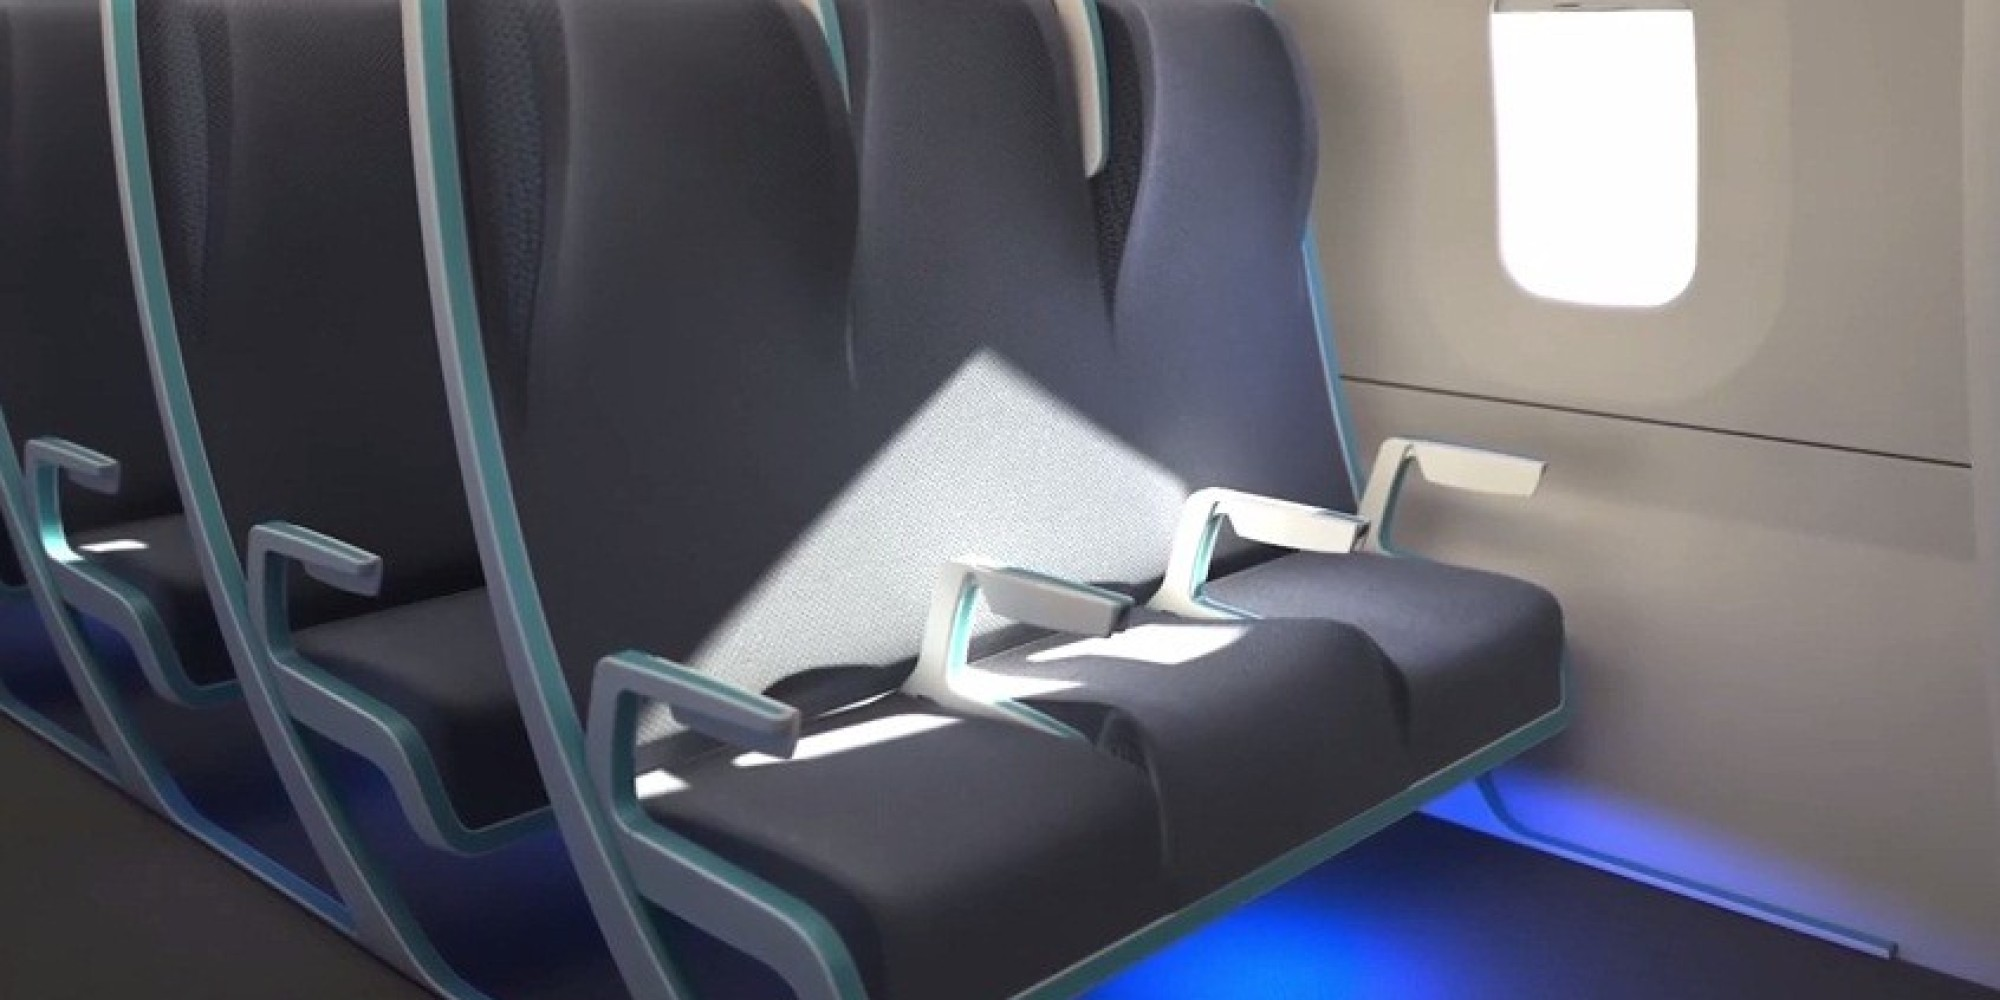 American Airline Seat Assignment